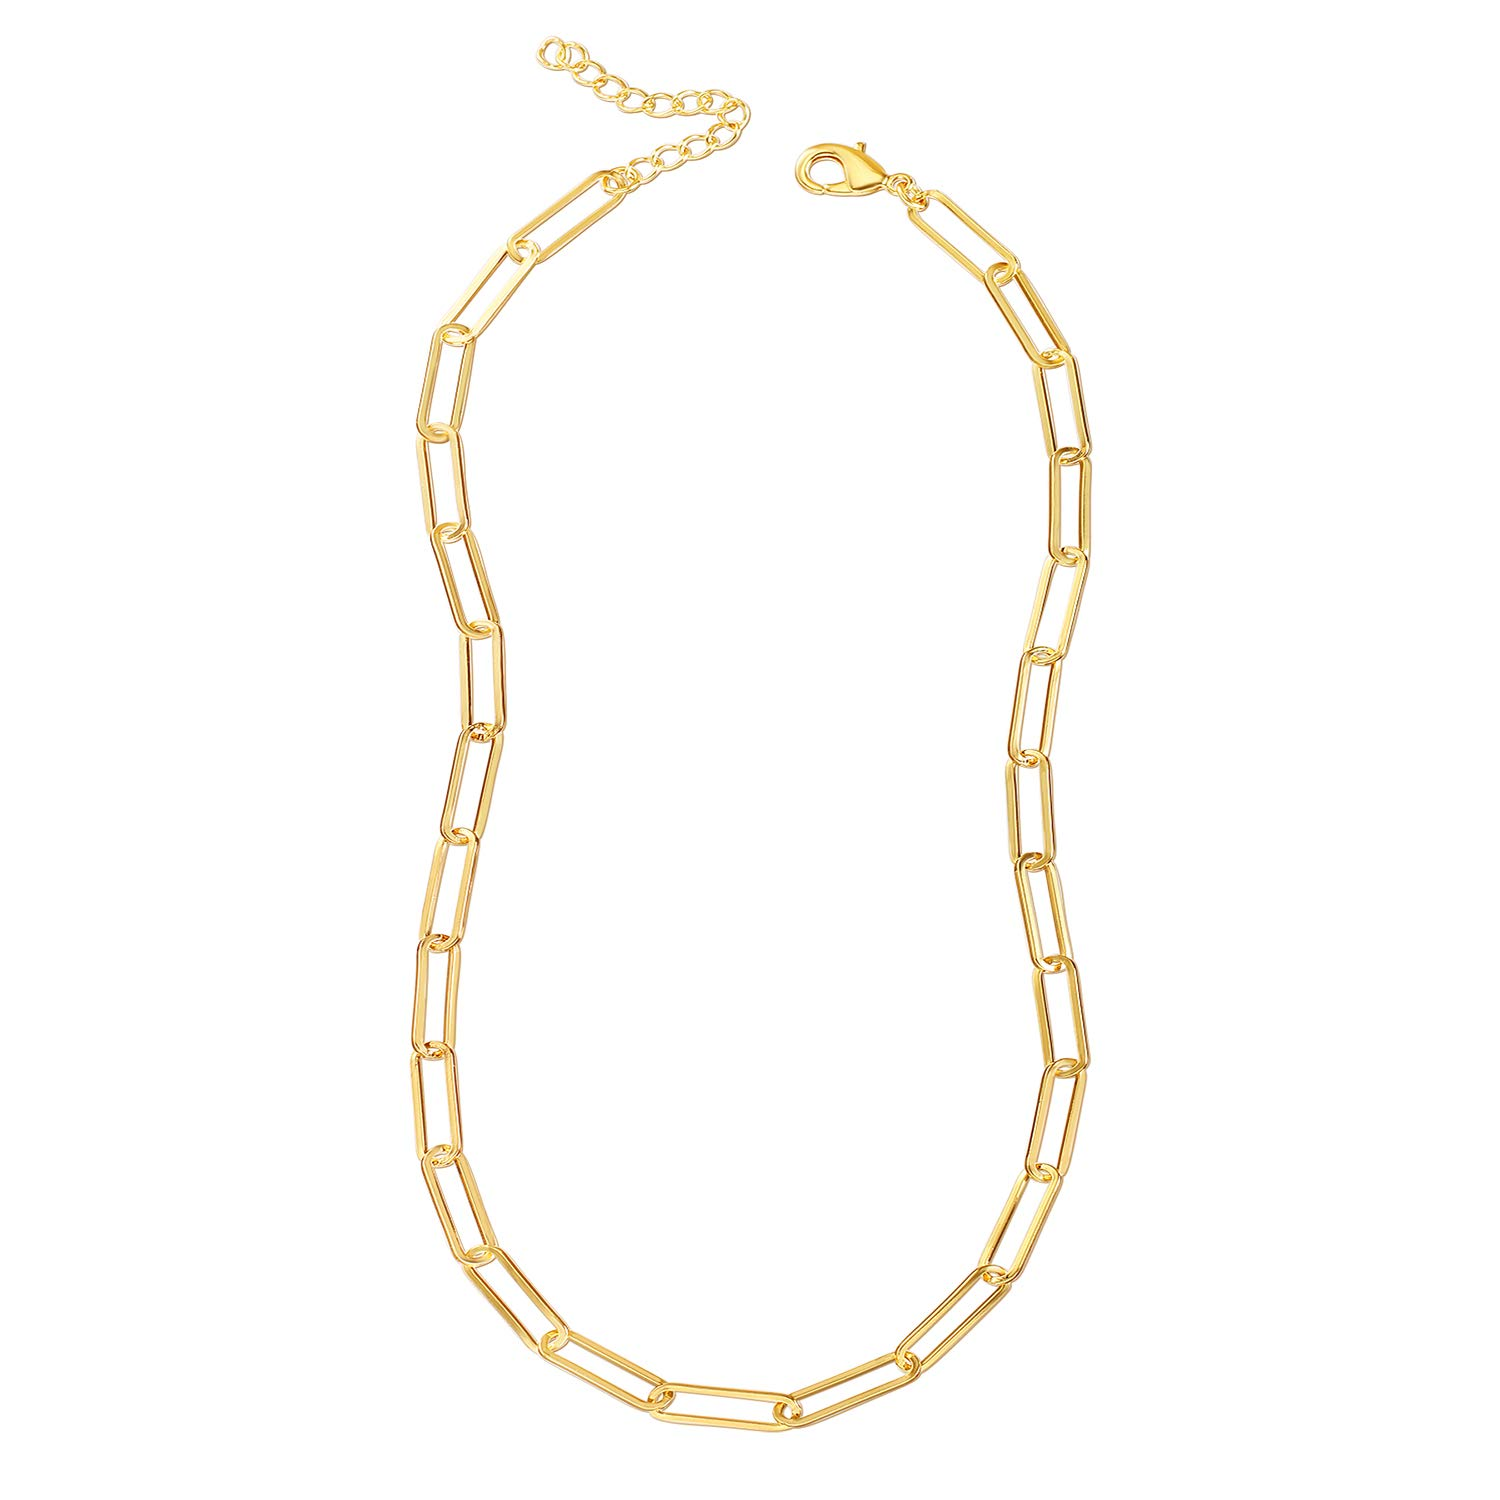 Reoxvo 18K Real Gold Plated Link Chain Necklace Bracelets for Women Oval Rectangle Chain Link Choker Ideal Gifts